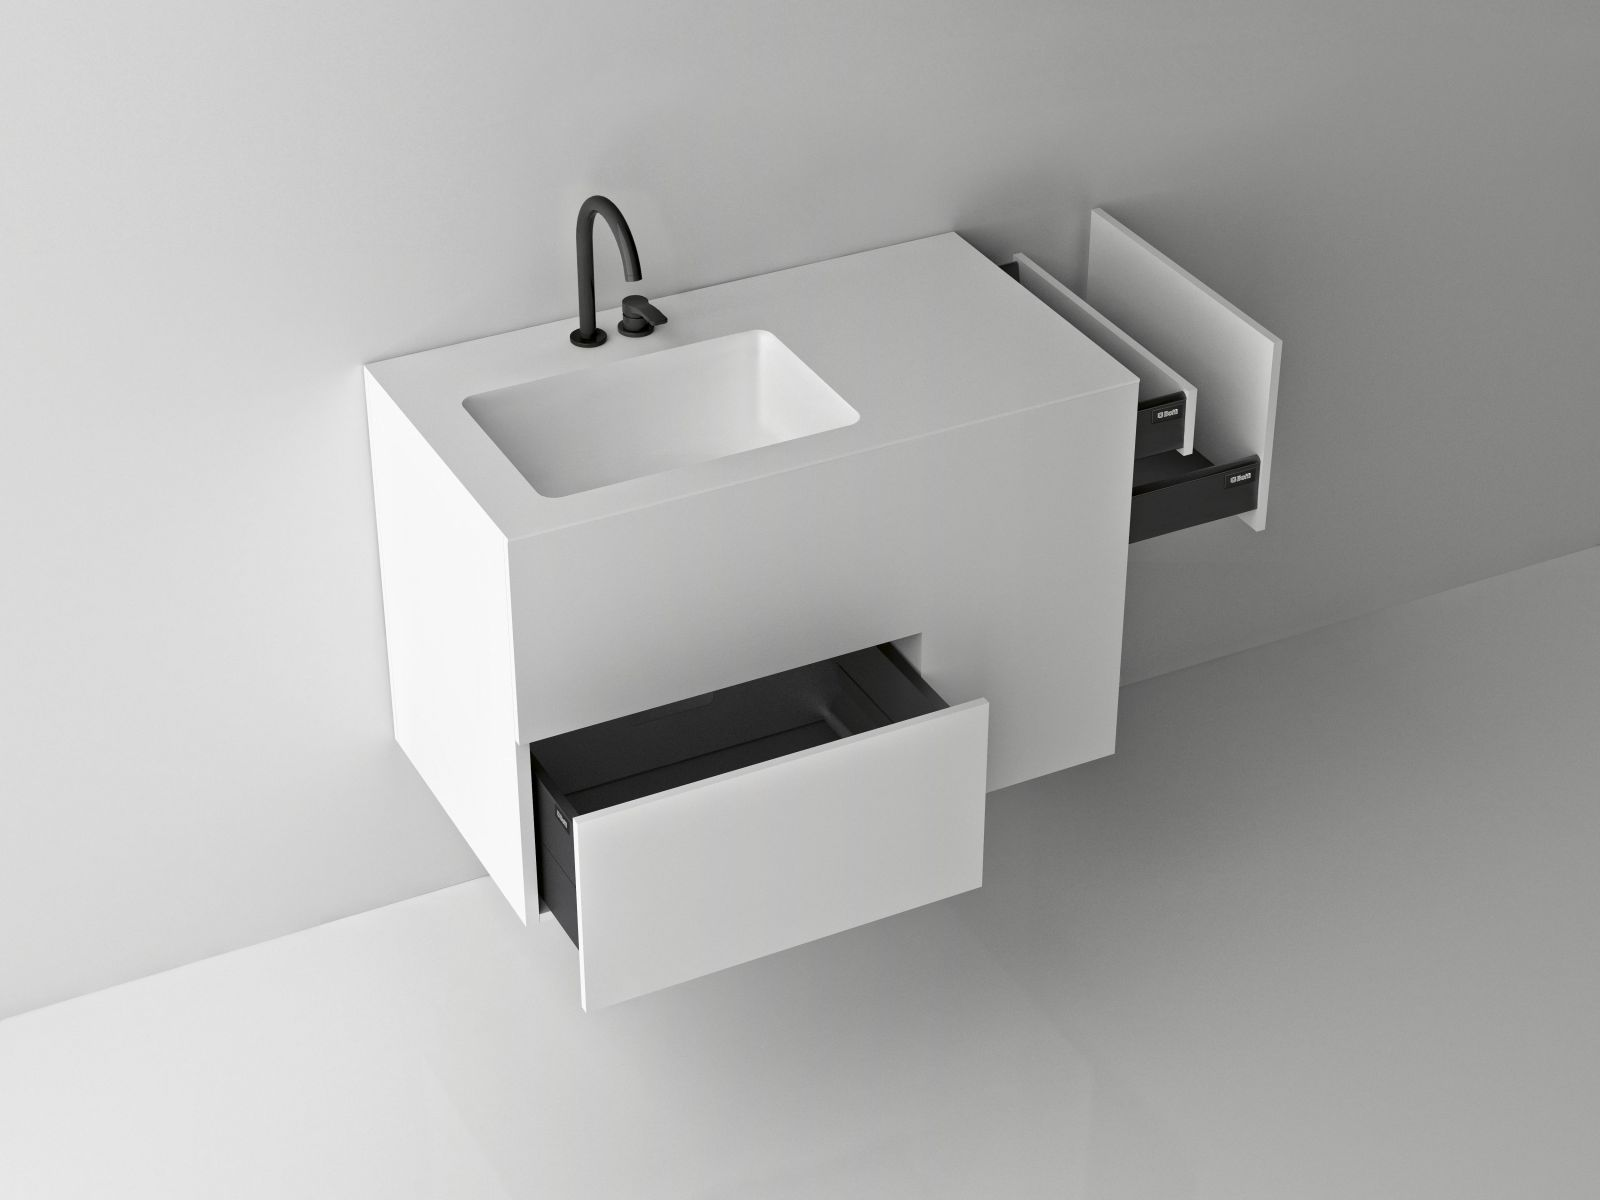 Boffi Quadtwo Washbasin Redim 3 Jpg Jpeg Image 1600 1200 Pixels Scaled 62 Small Space Bathroom Bathroom Interior Bathroom Design